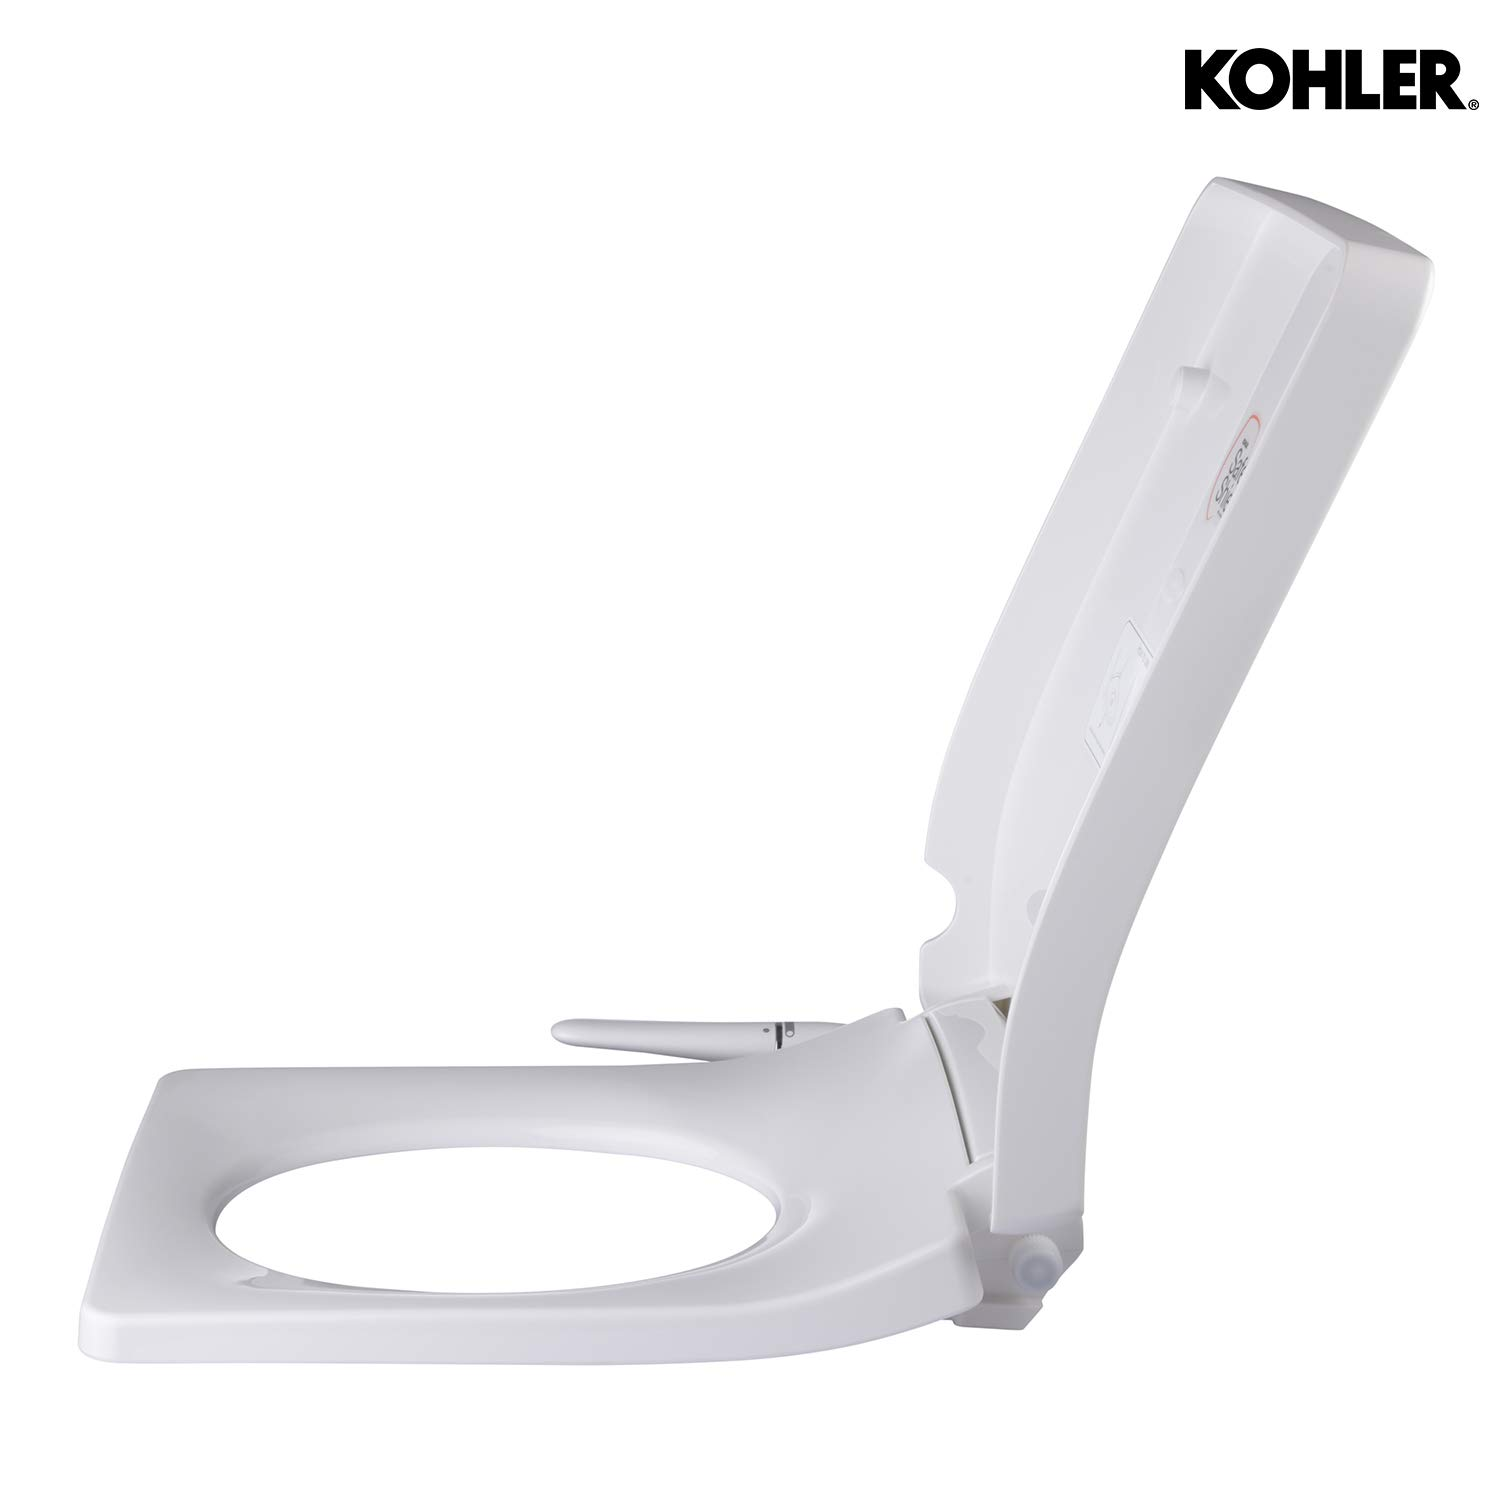 Magnificent Kohler Pureclean Forefront Bidet Toilet Seat With Self Cleaning Nozzle Retractable Wand Front And Rear Wash Water Pressure Control Through Pabps2019 Chair Design Images Pabps2019Com